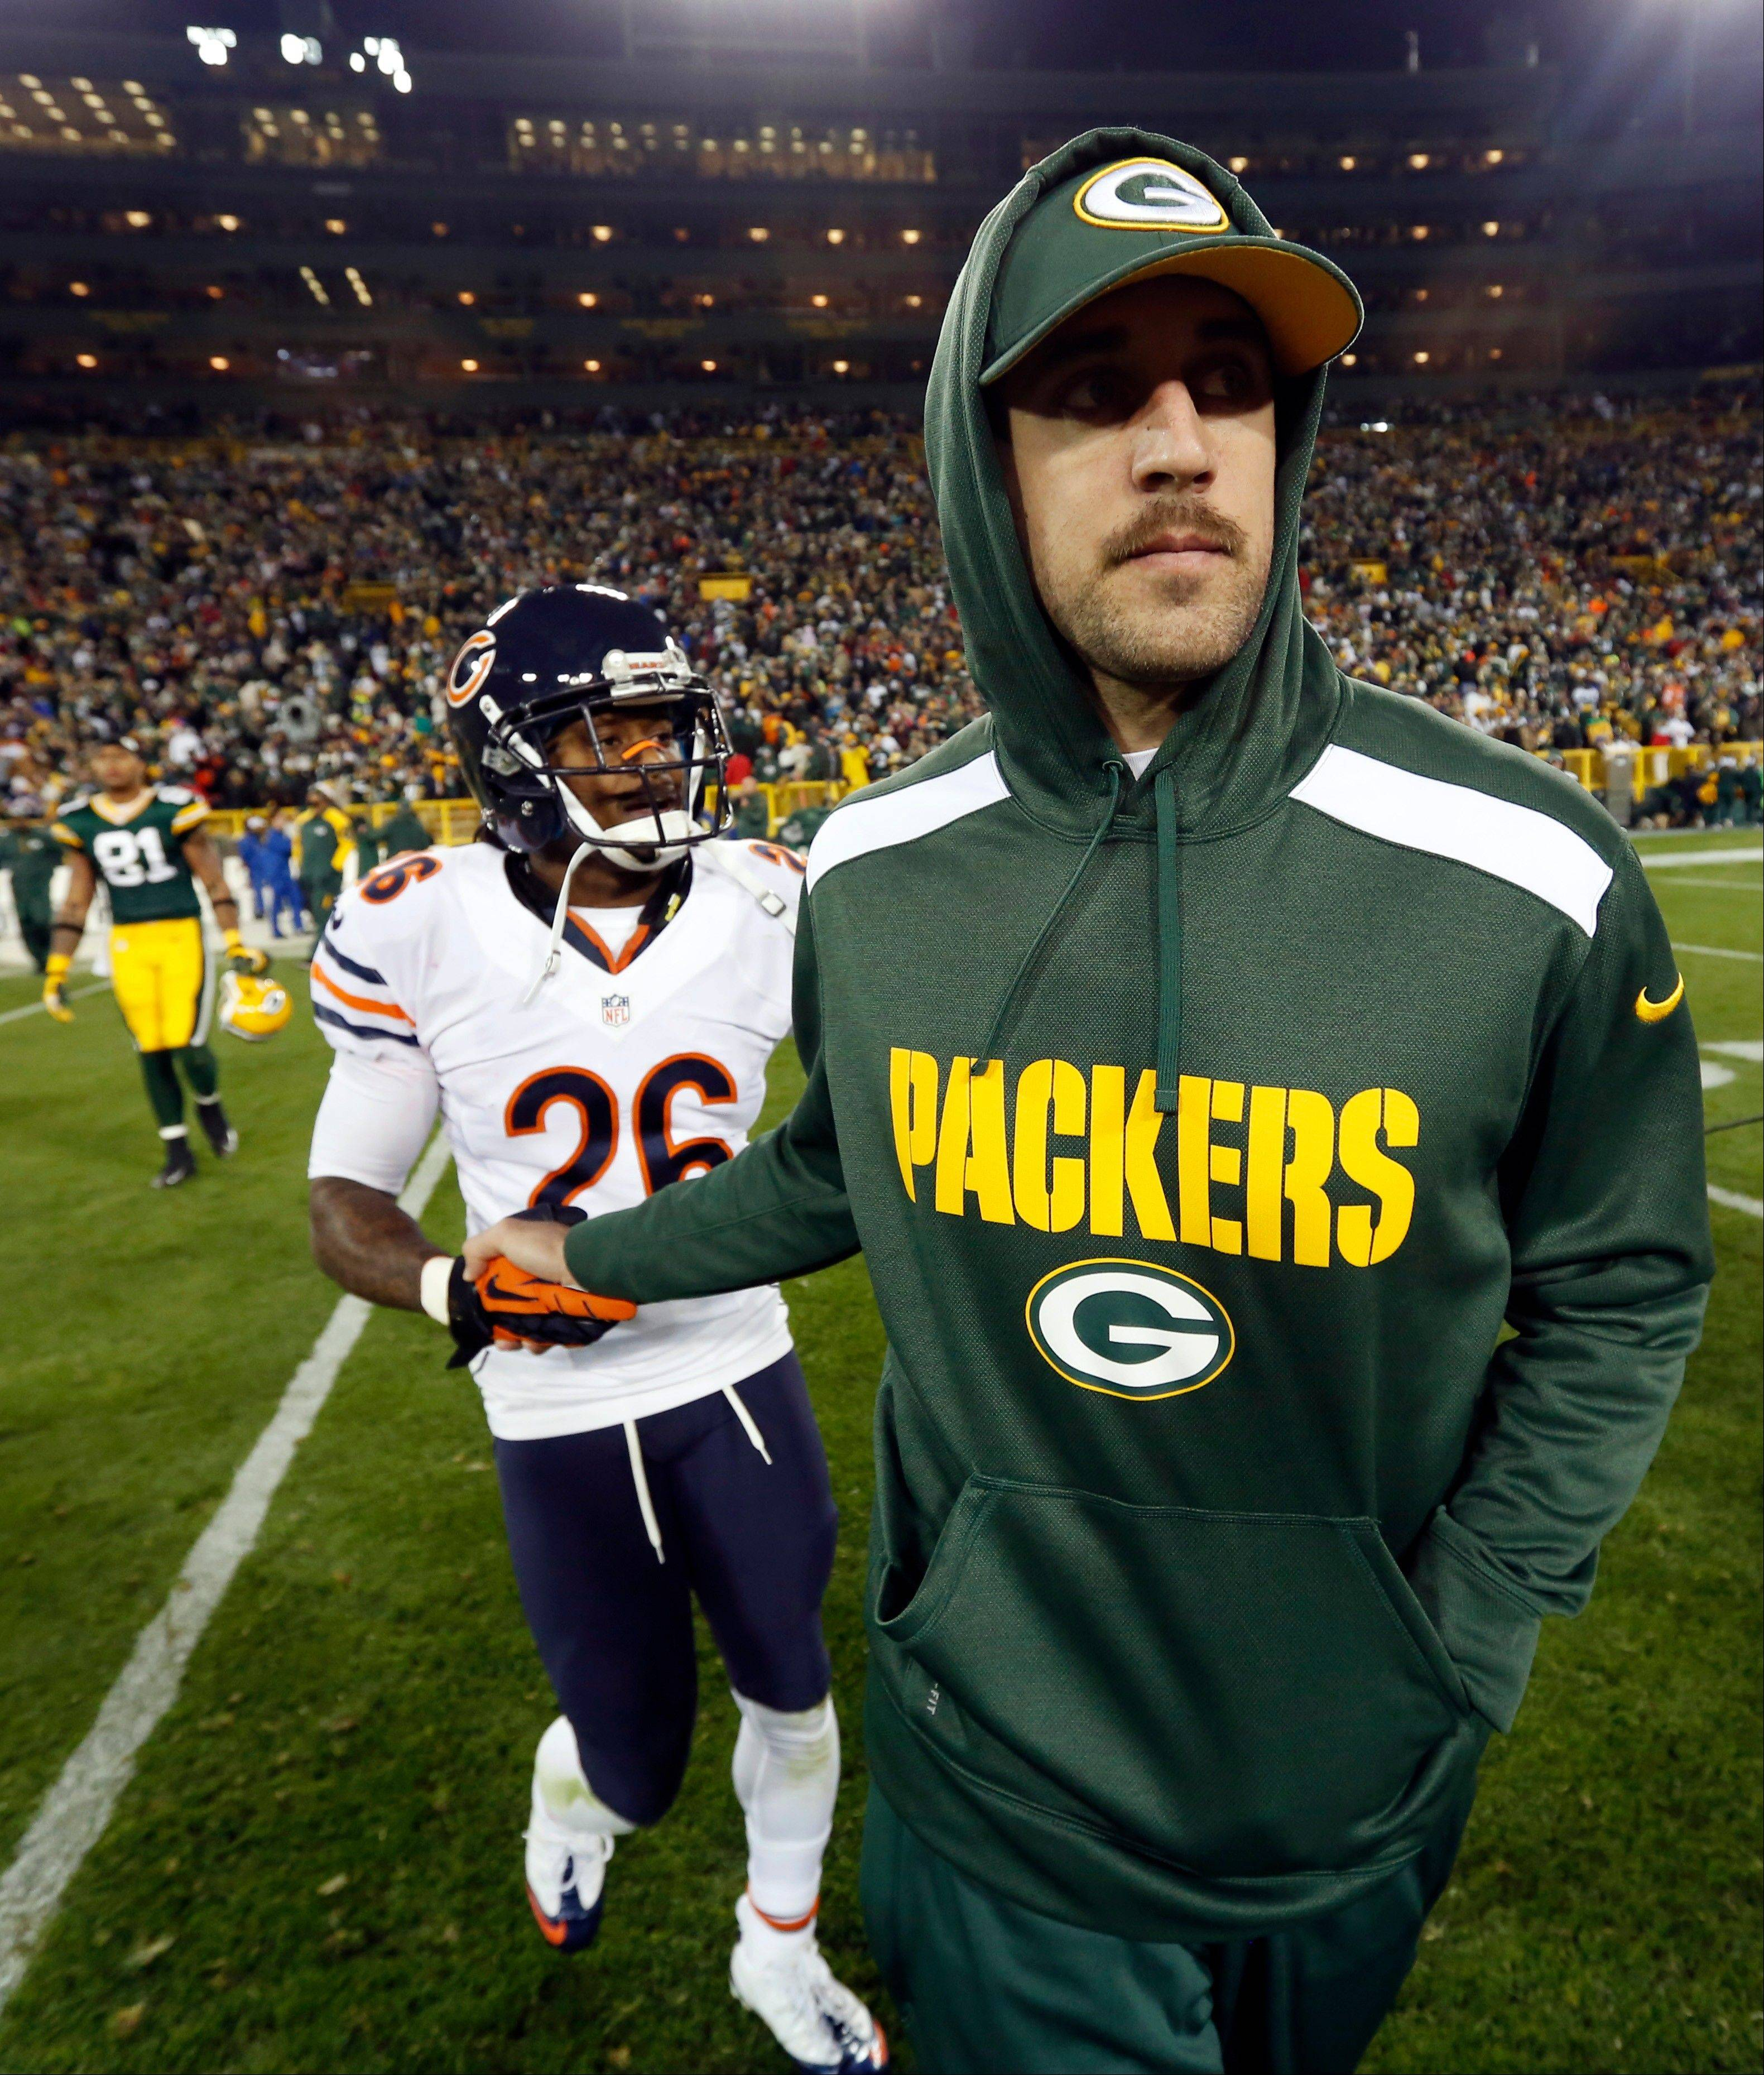 Packers QB Rodgers has fractured collarbone